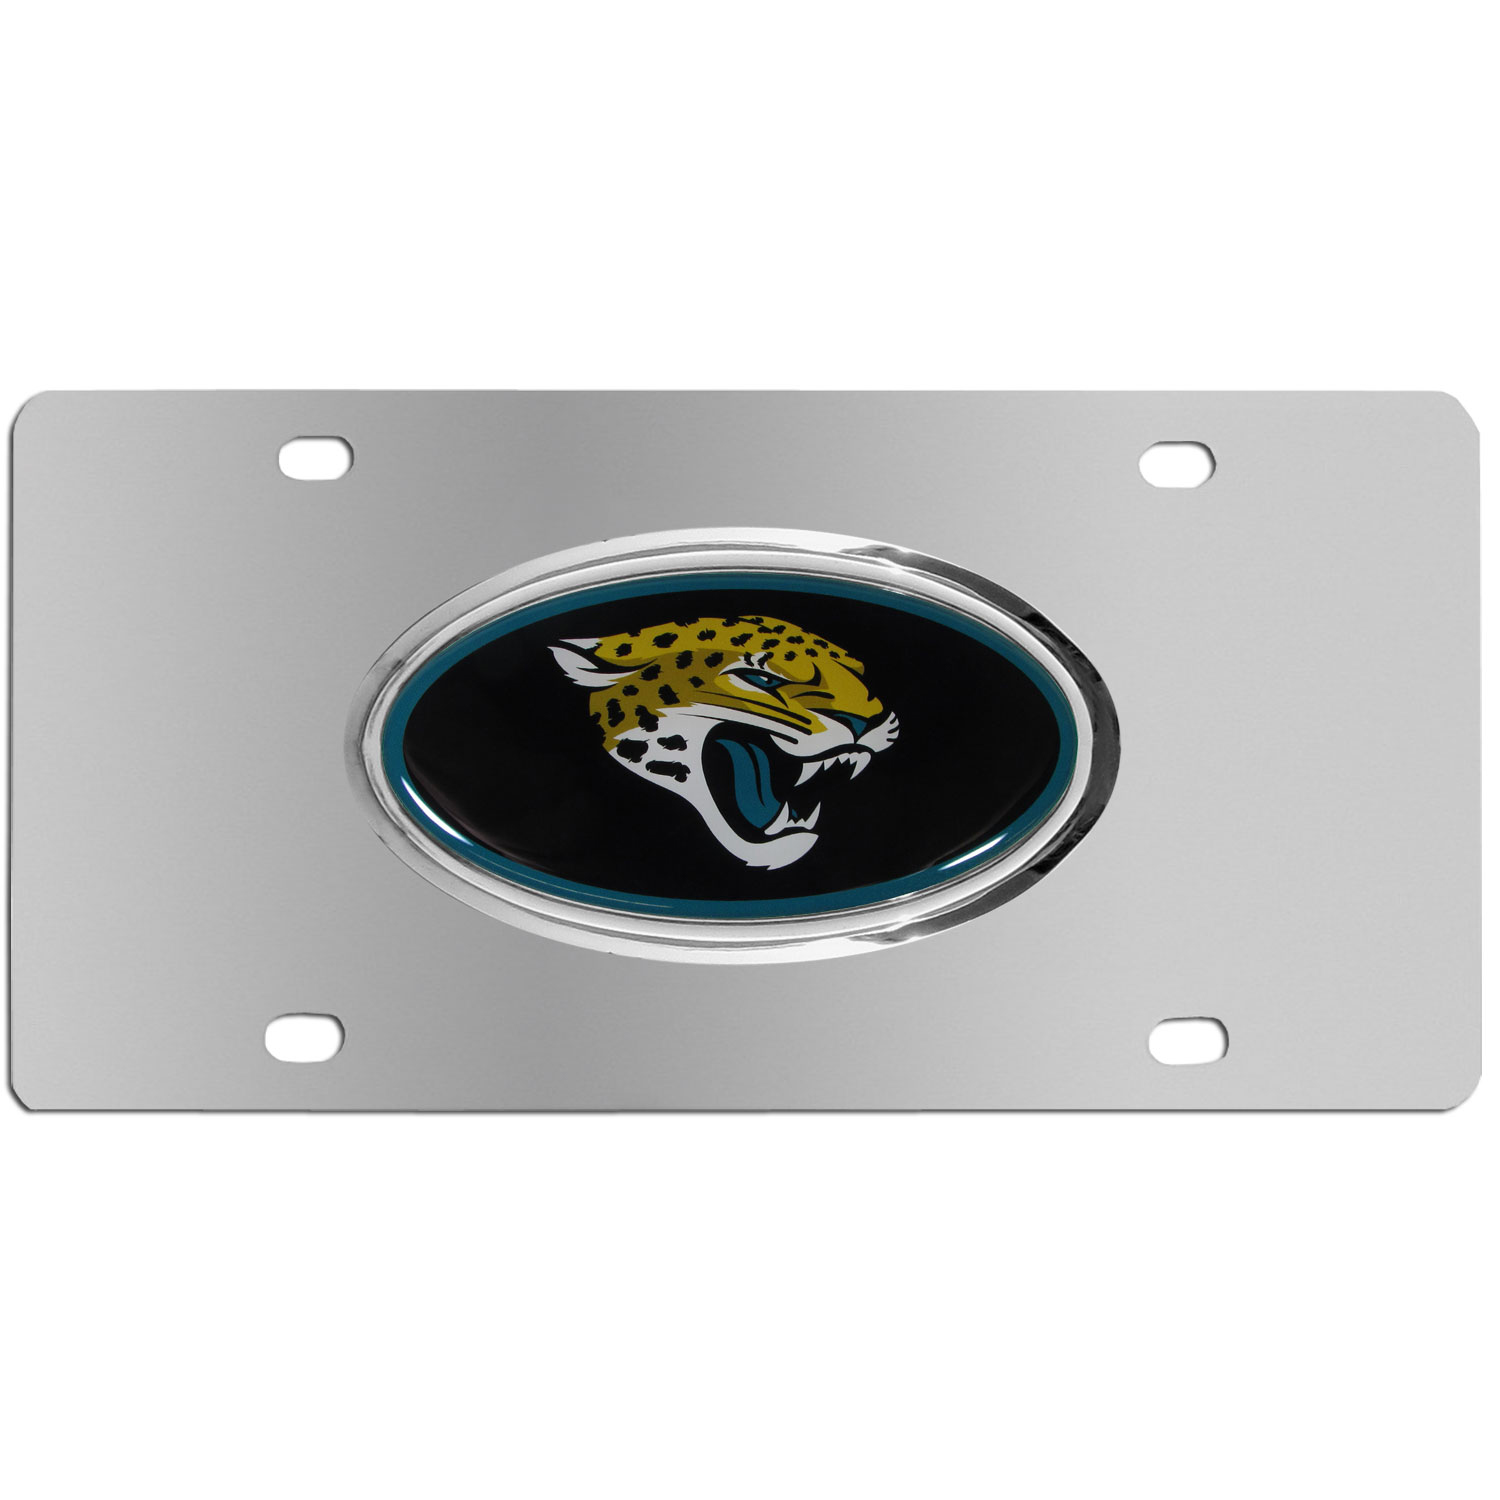 Jacksonville Jaguars Steel Plate - Accessorize your vehicle or game room with this unique NFL steel plate featuring your team's logo on a stainless steel plate.